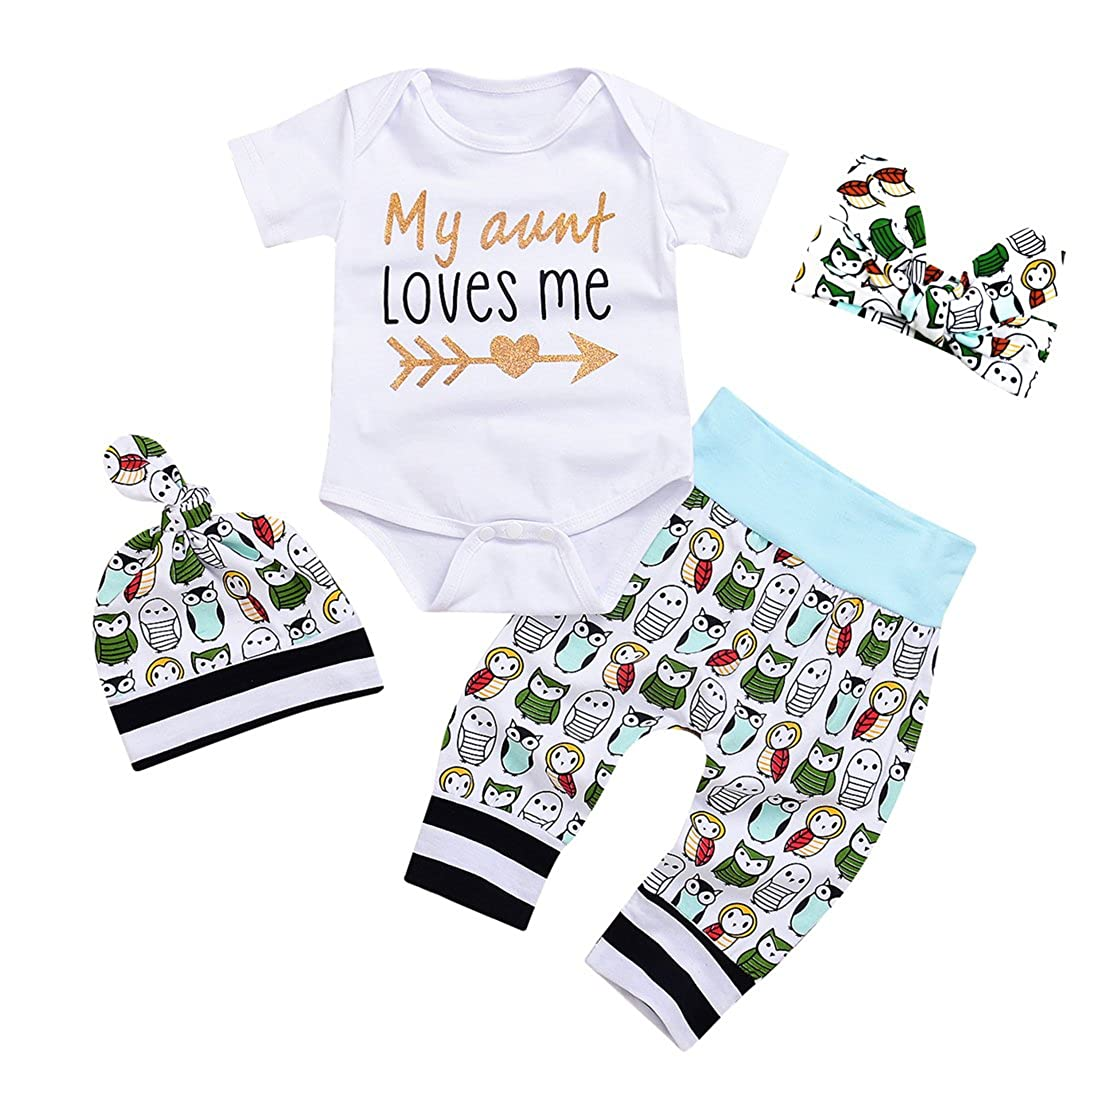 0abcd7333 Amazon.com  Newborn Baby Girls Owls Outfit Set 4pcs Unisex Baby ...